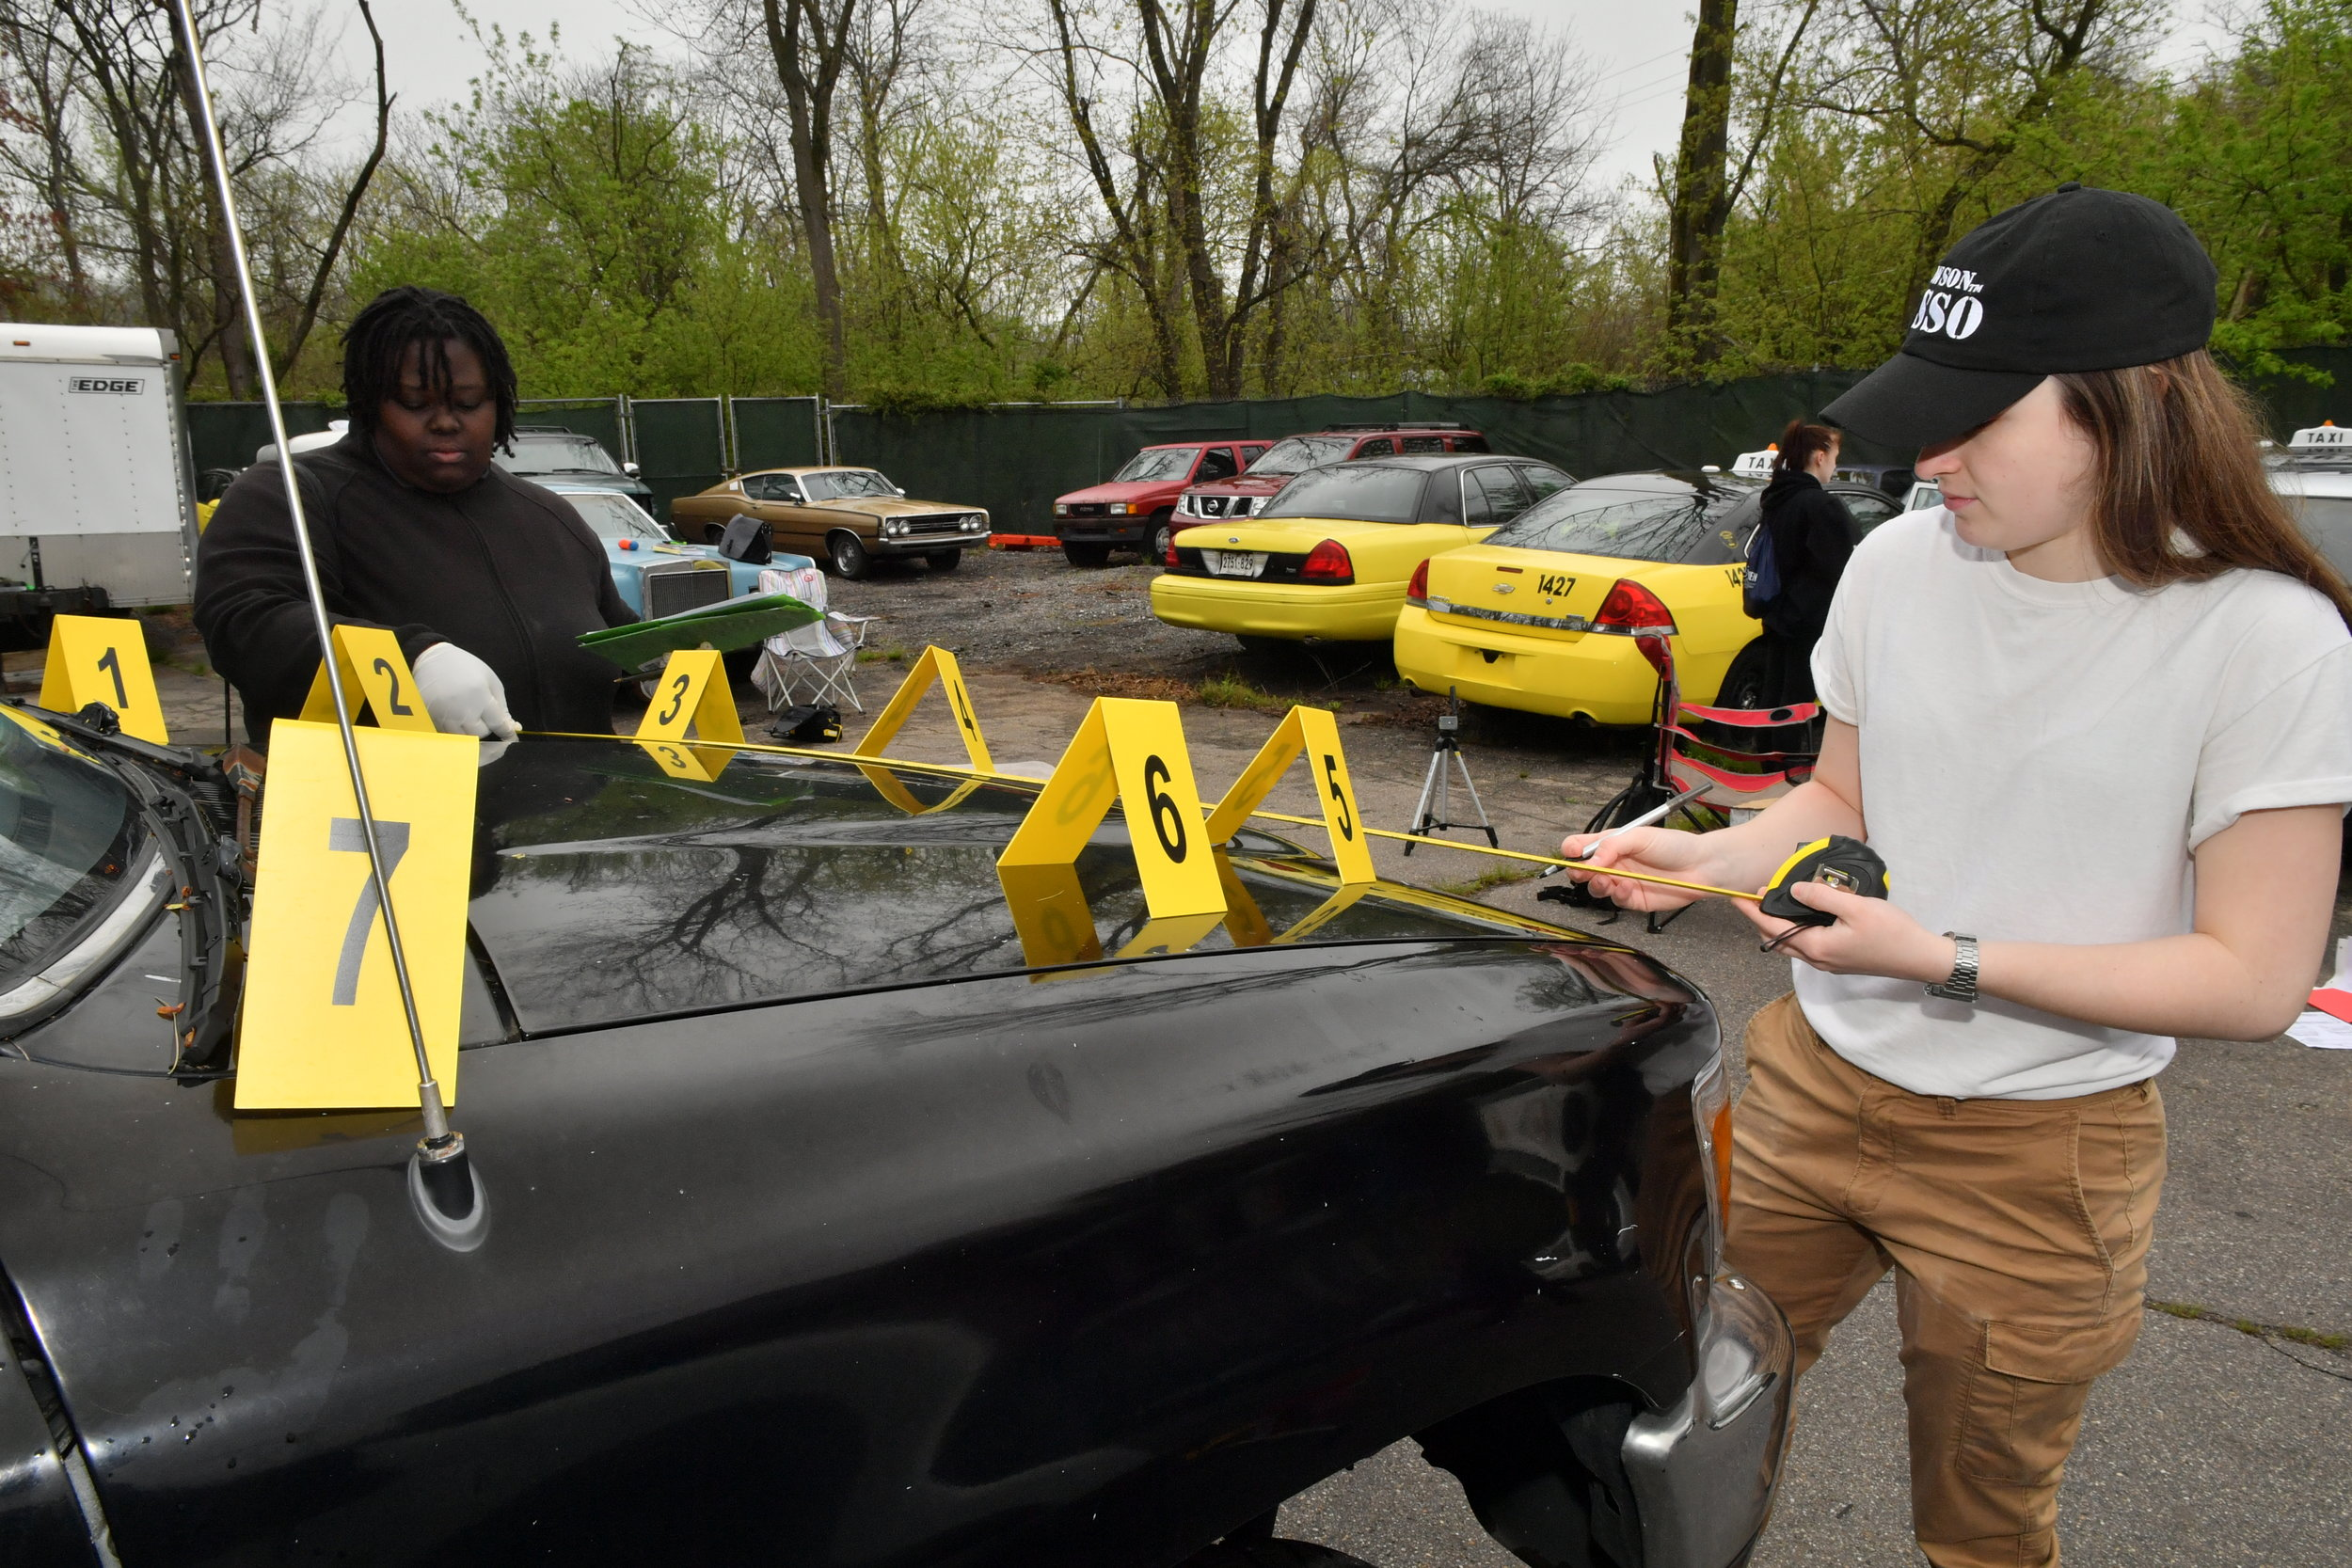 TU Crime Students Mock Crime Scene International Auto Repair Baltimore MD 21207 21244 4.JPG